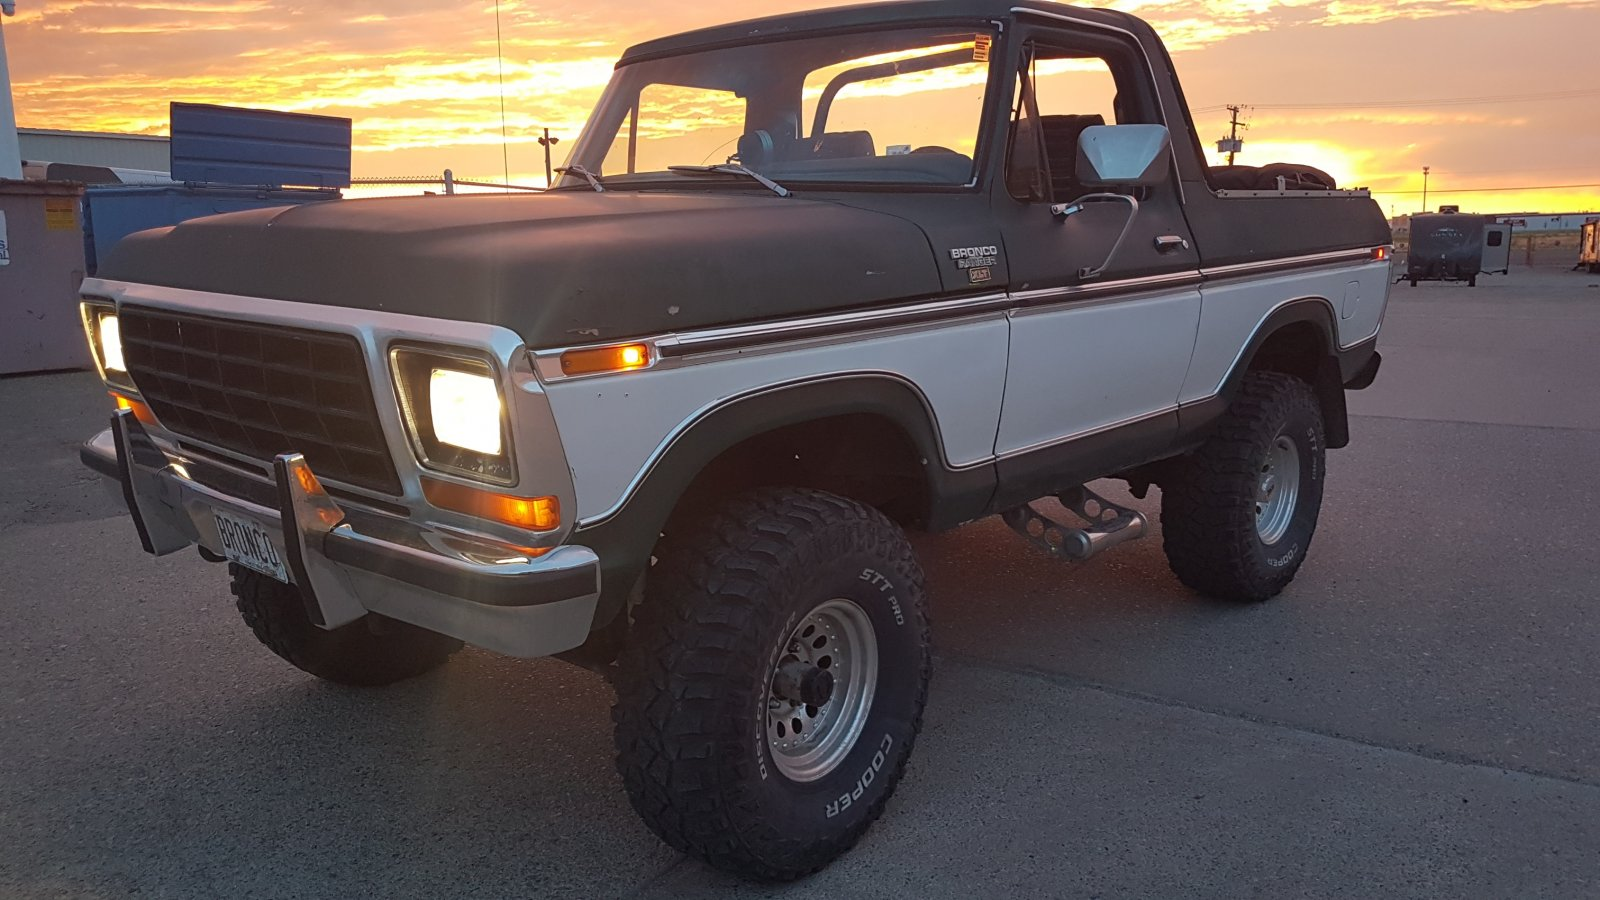 1979 Ford Bronco With a 400 Engine 13.jpg